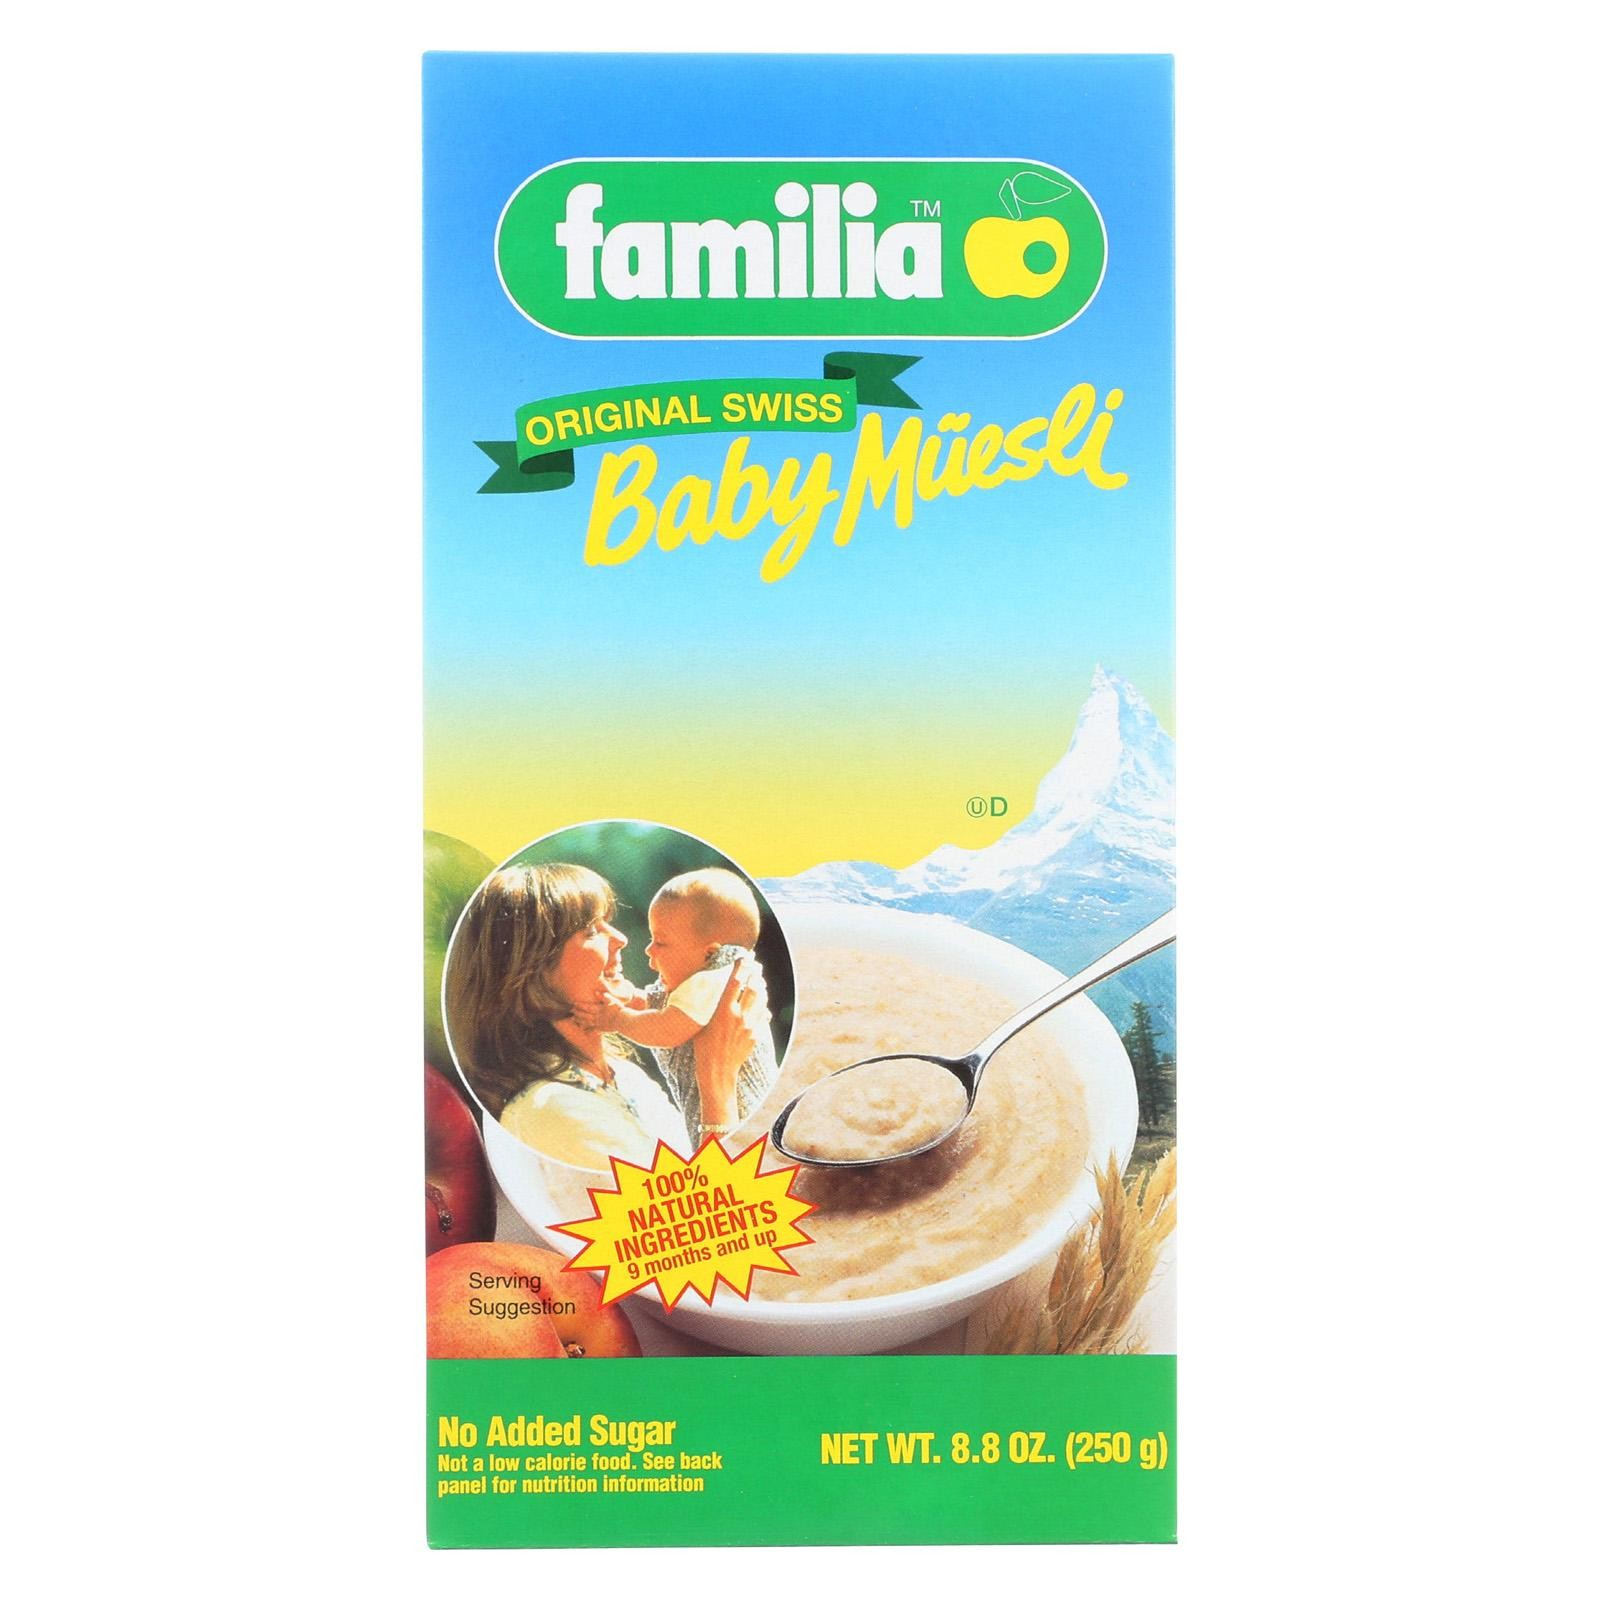 Familia Baby Muesli - Original Swiss - Pack of 6 - 8.8 Oz